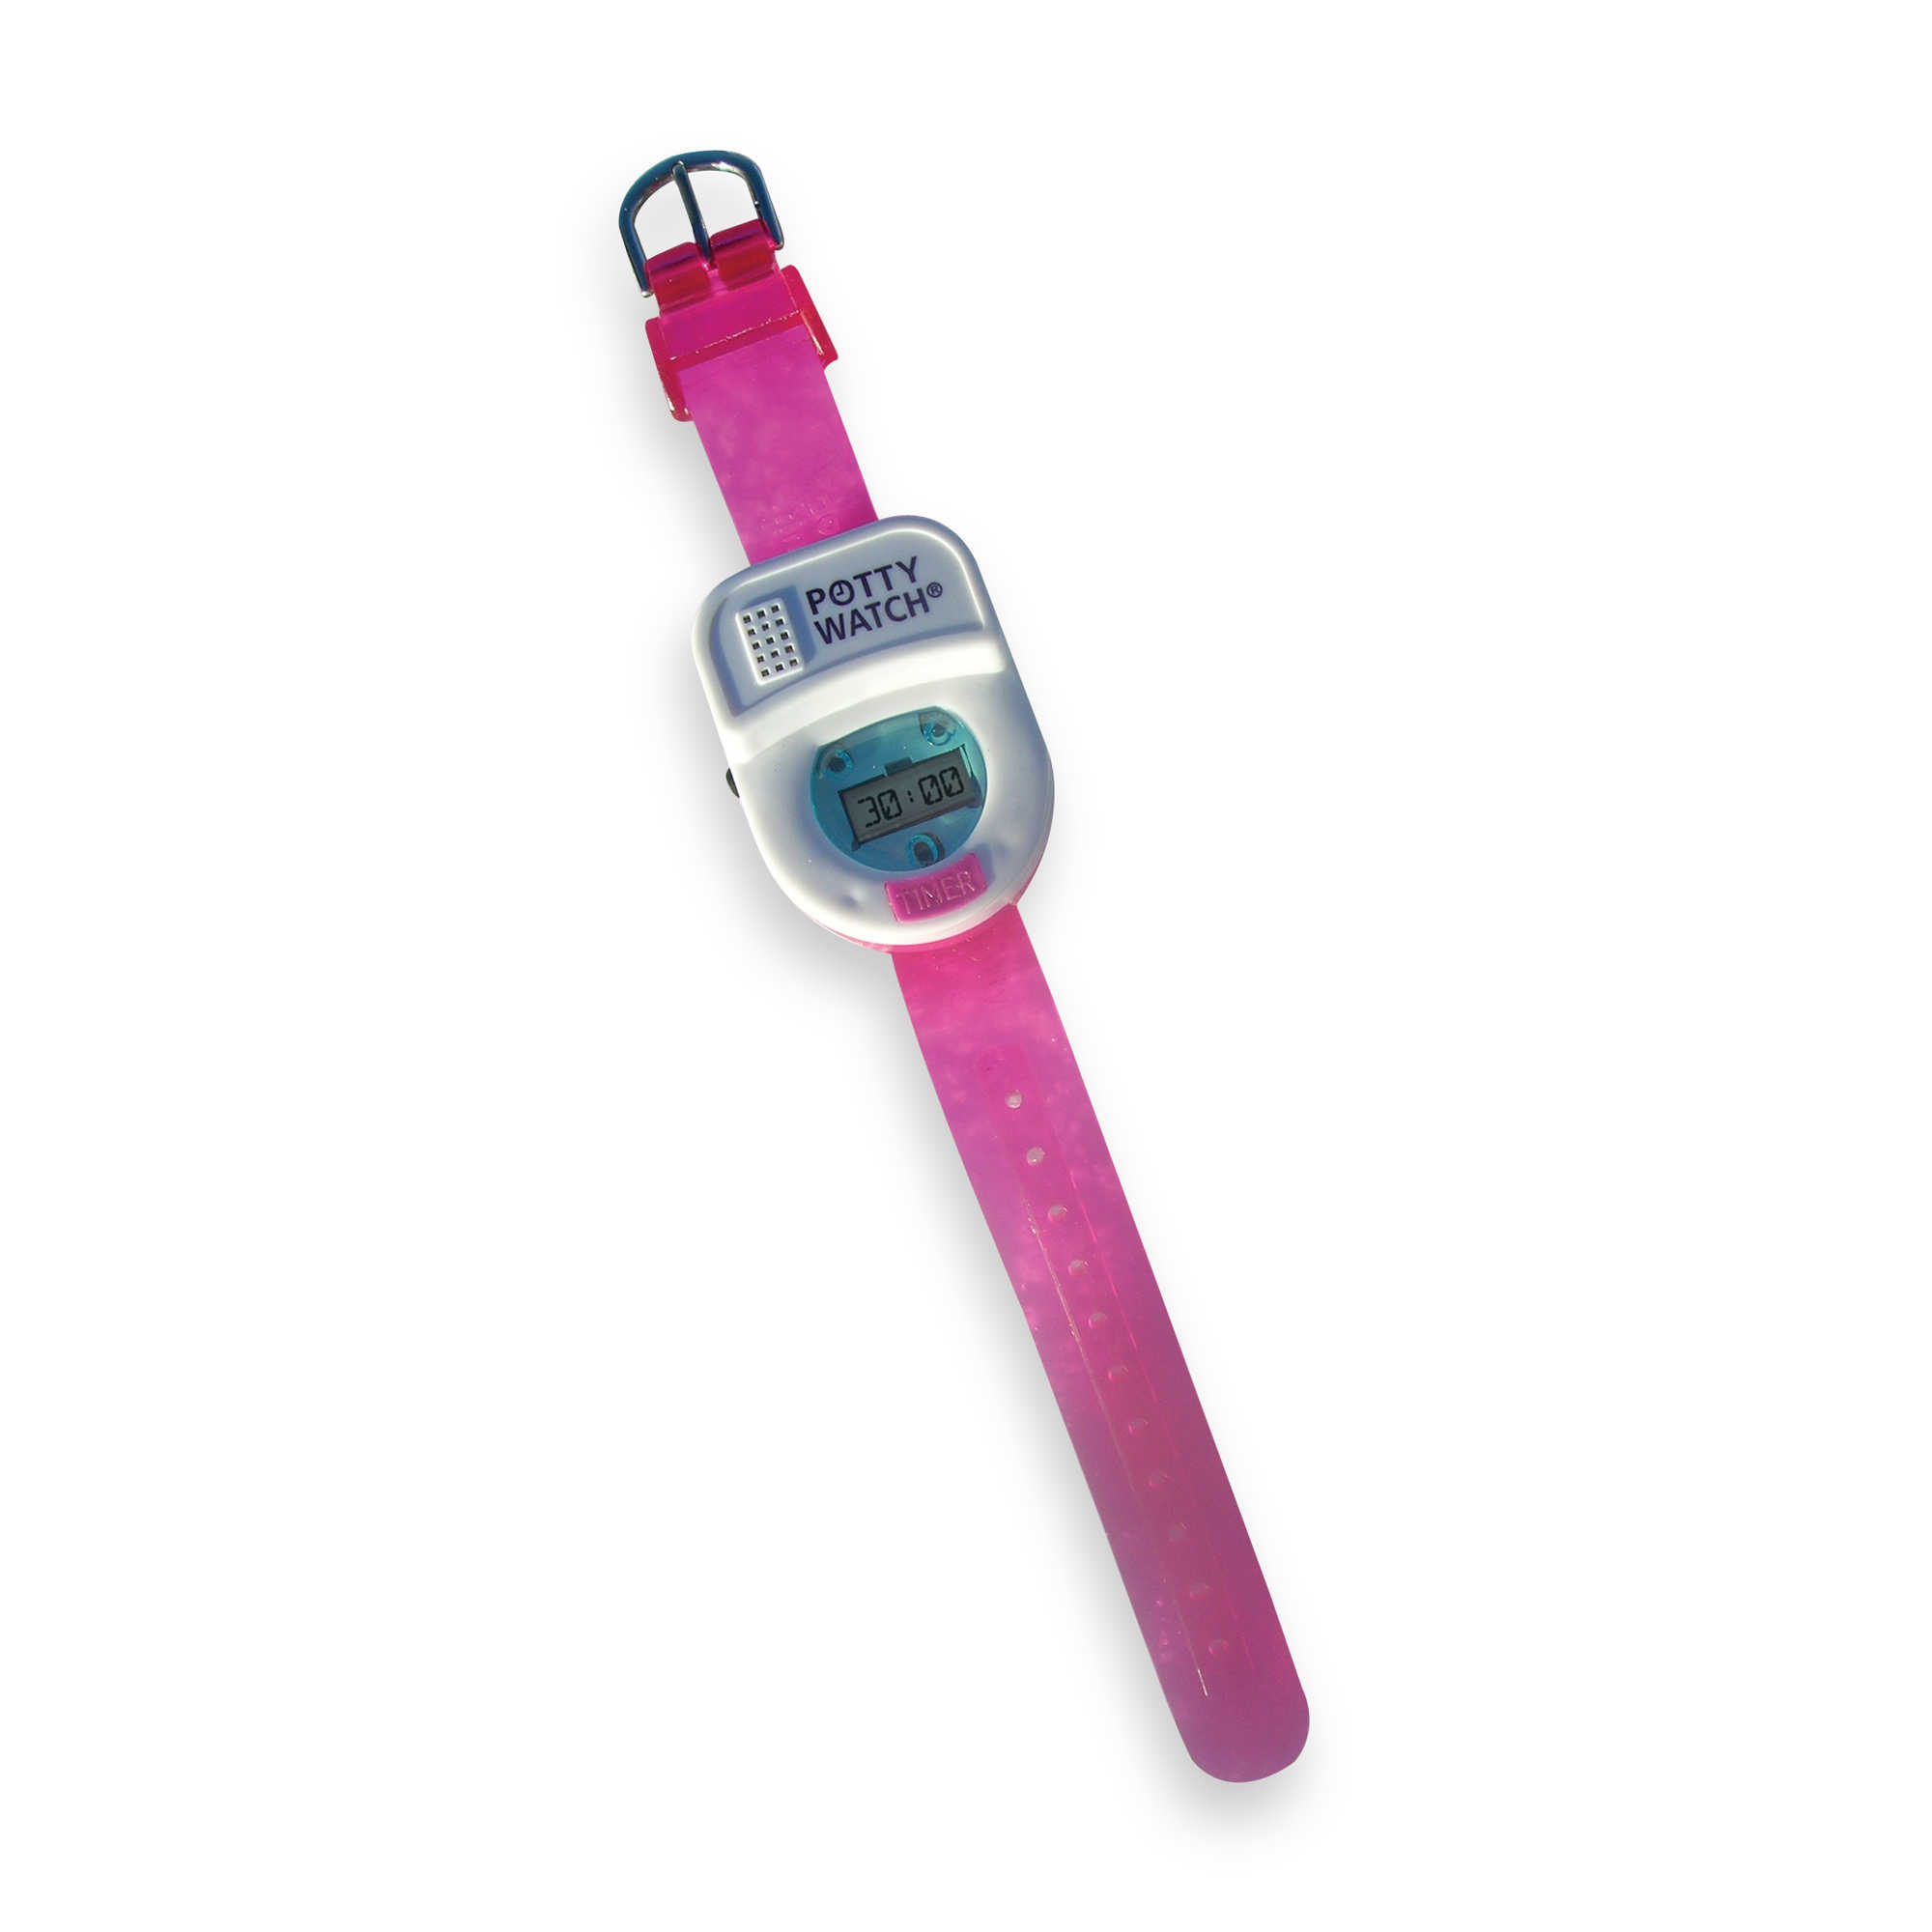 The Potty Time™ Potty Watch® in Pink